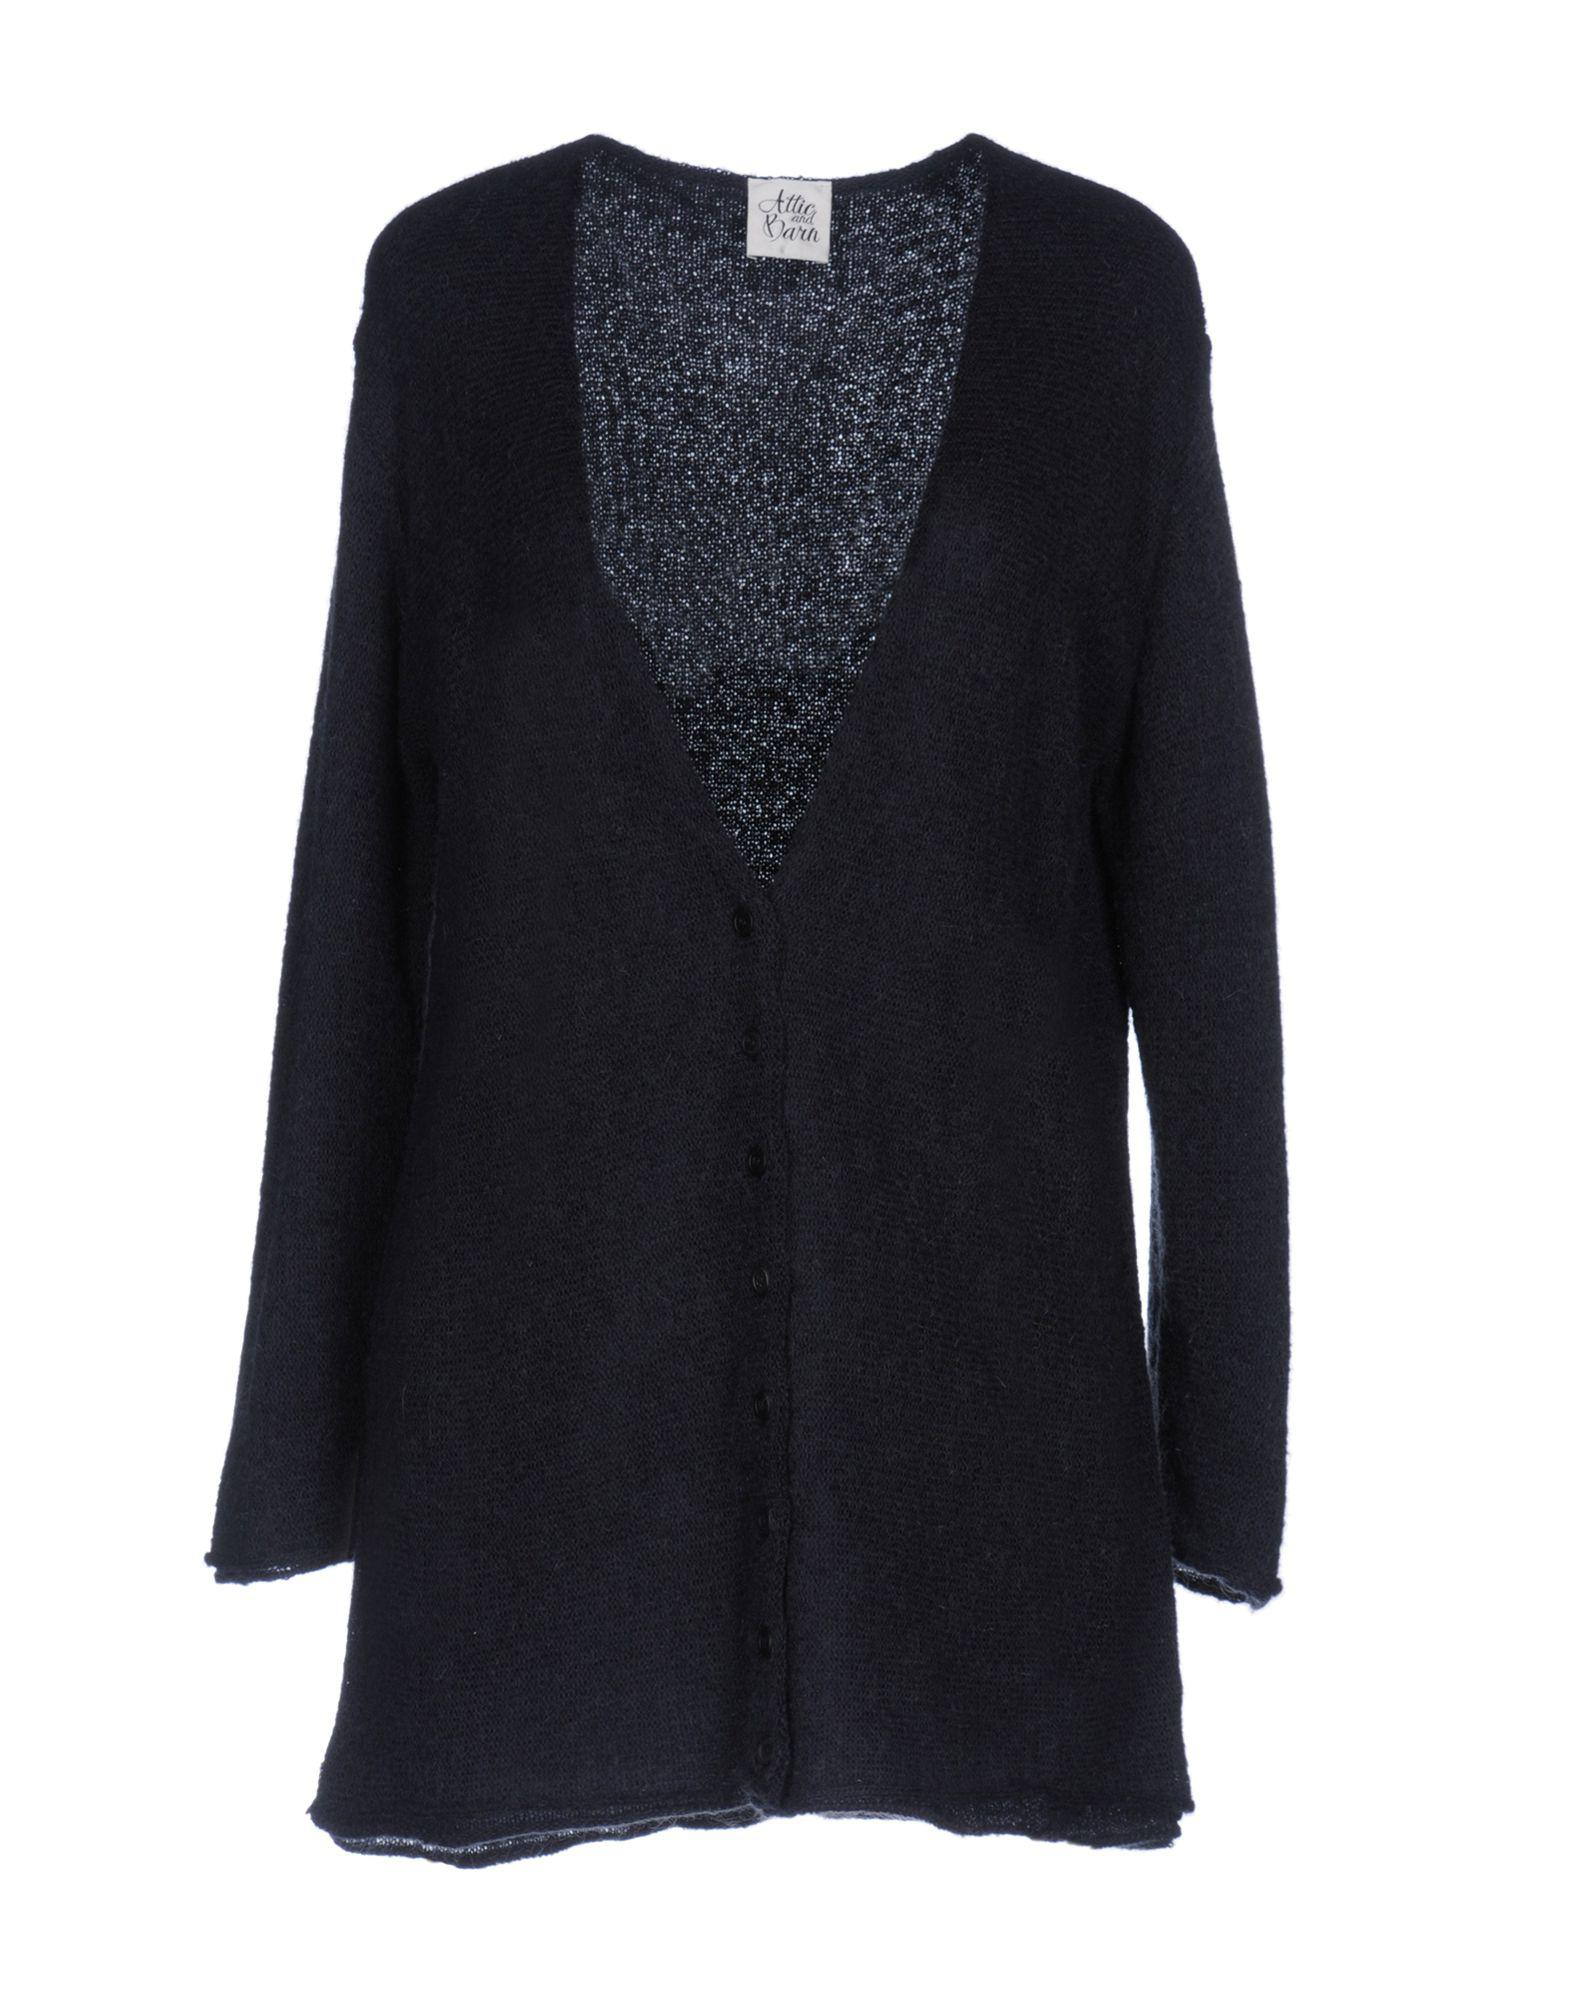 Buy Cheap Shop Offer Browse Sale Online KNITWEAR - Cardigans Attic and Barn Largest Supplier Cheap Price Really imp818IK